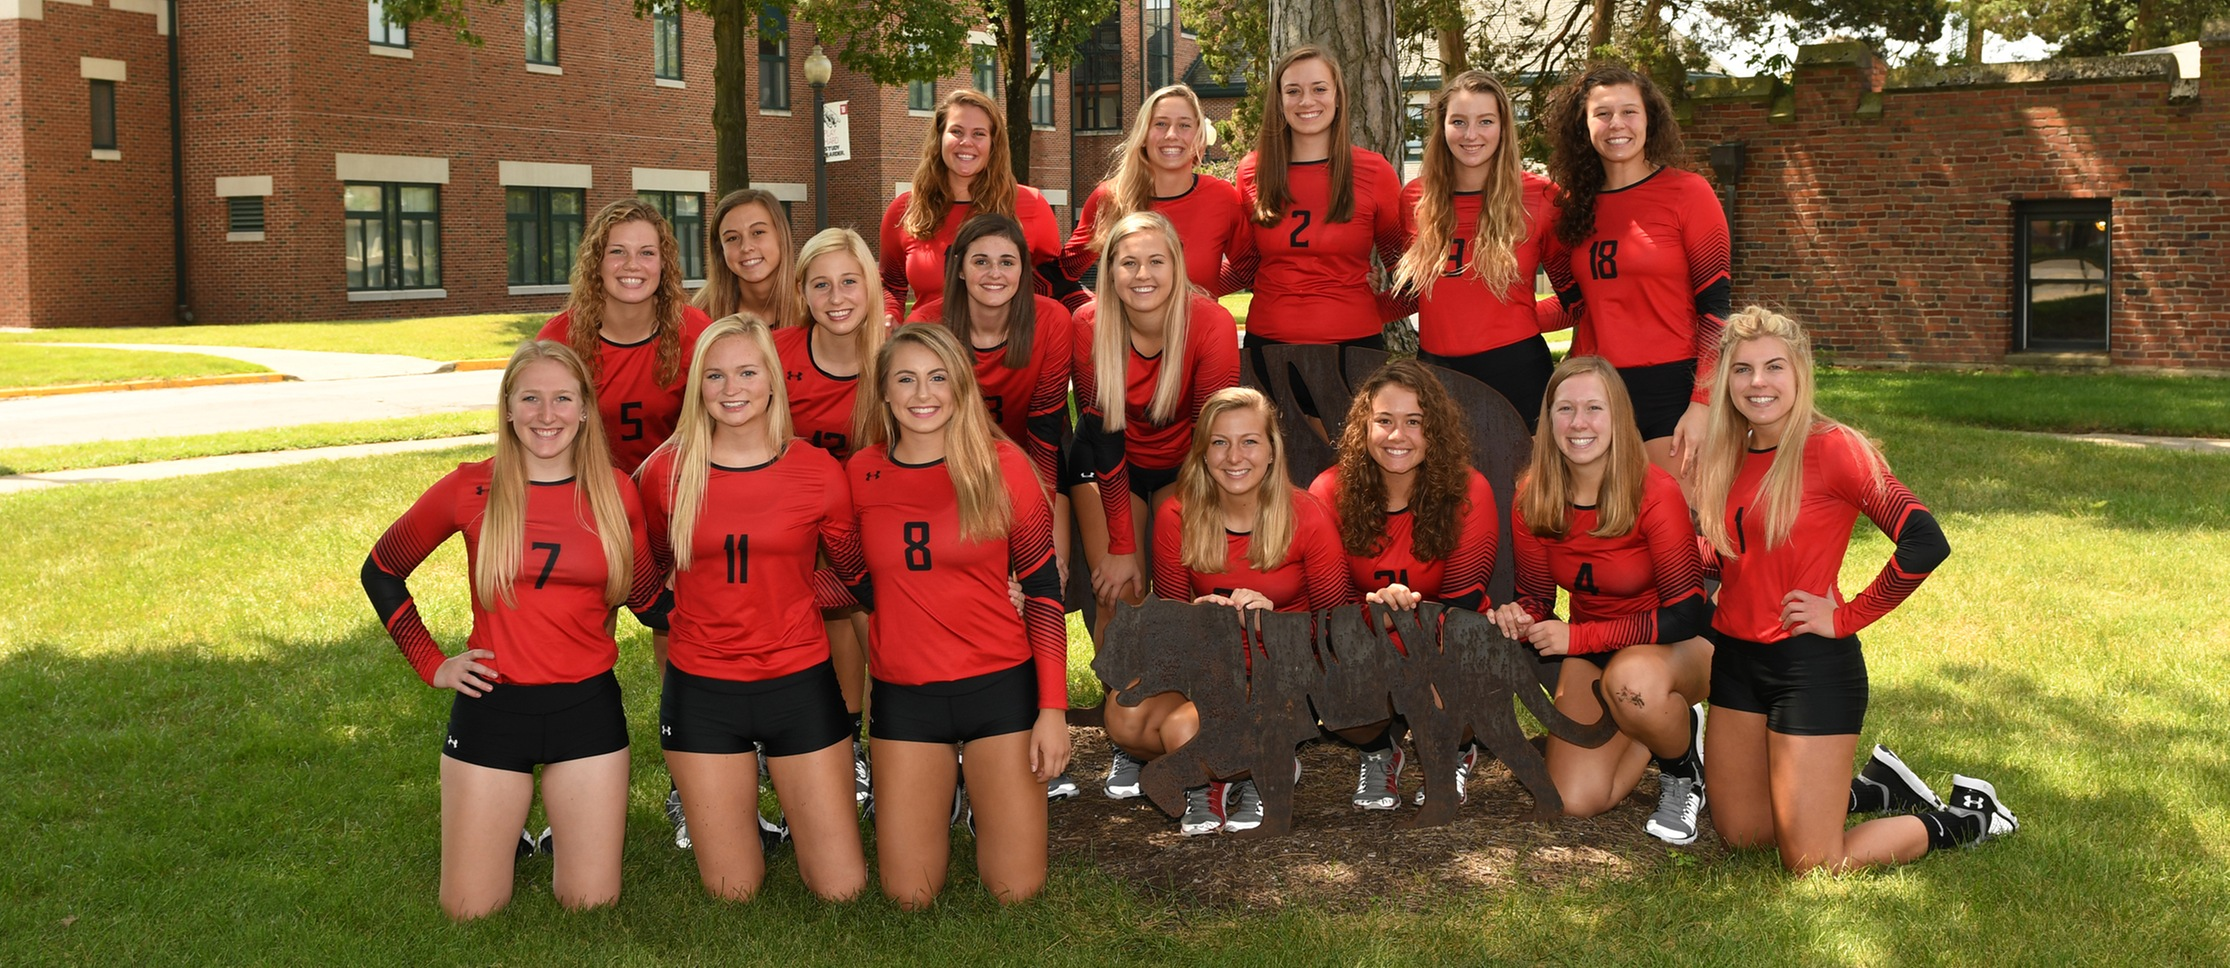 2017 Wittenberg Volleyball